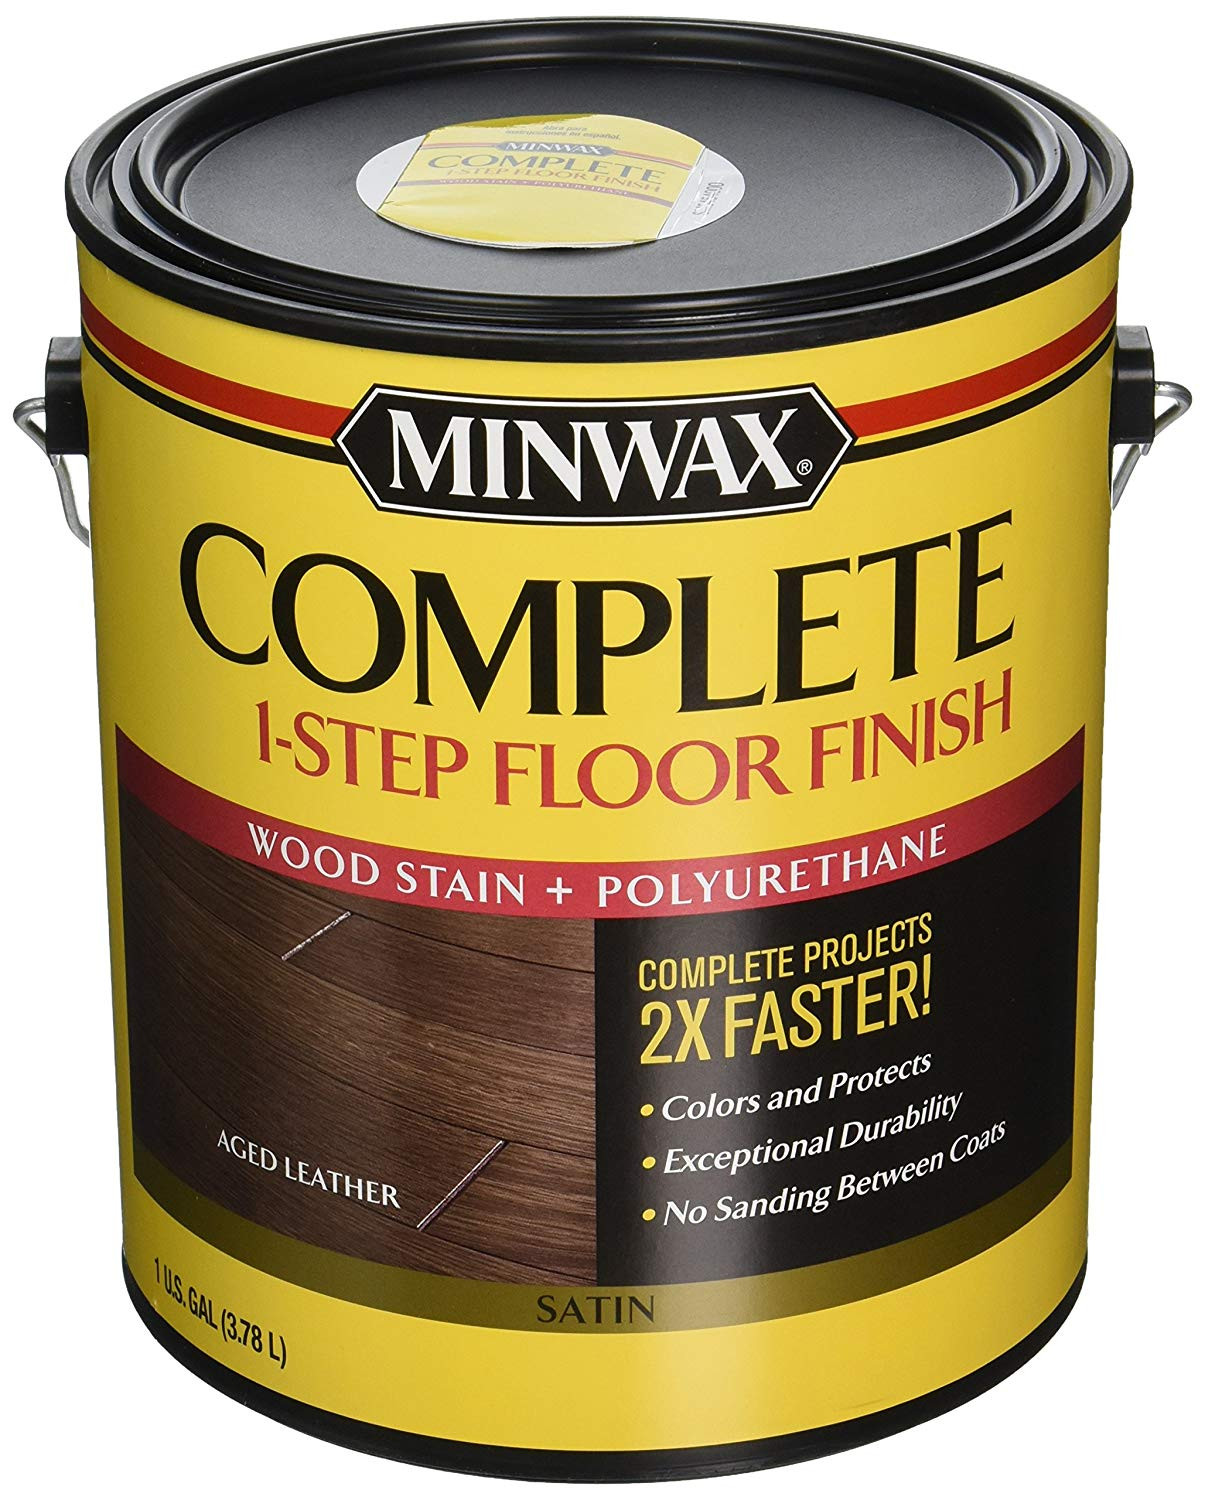 Cost to Stain Hardwood Floors Of Minwax 672050000 67205 1g Satin Aged Leather Complete 1 Step Floor Pertaining to Minwax 672050000 67205 1g Satin Aged Leather Complete 1 Step Floor Finish Amazon Com